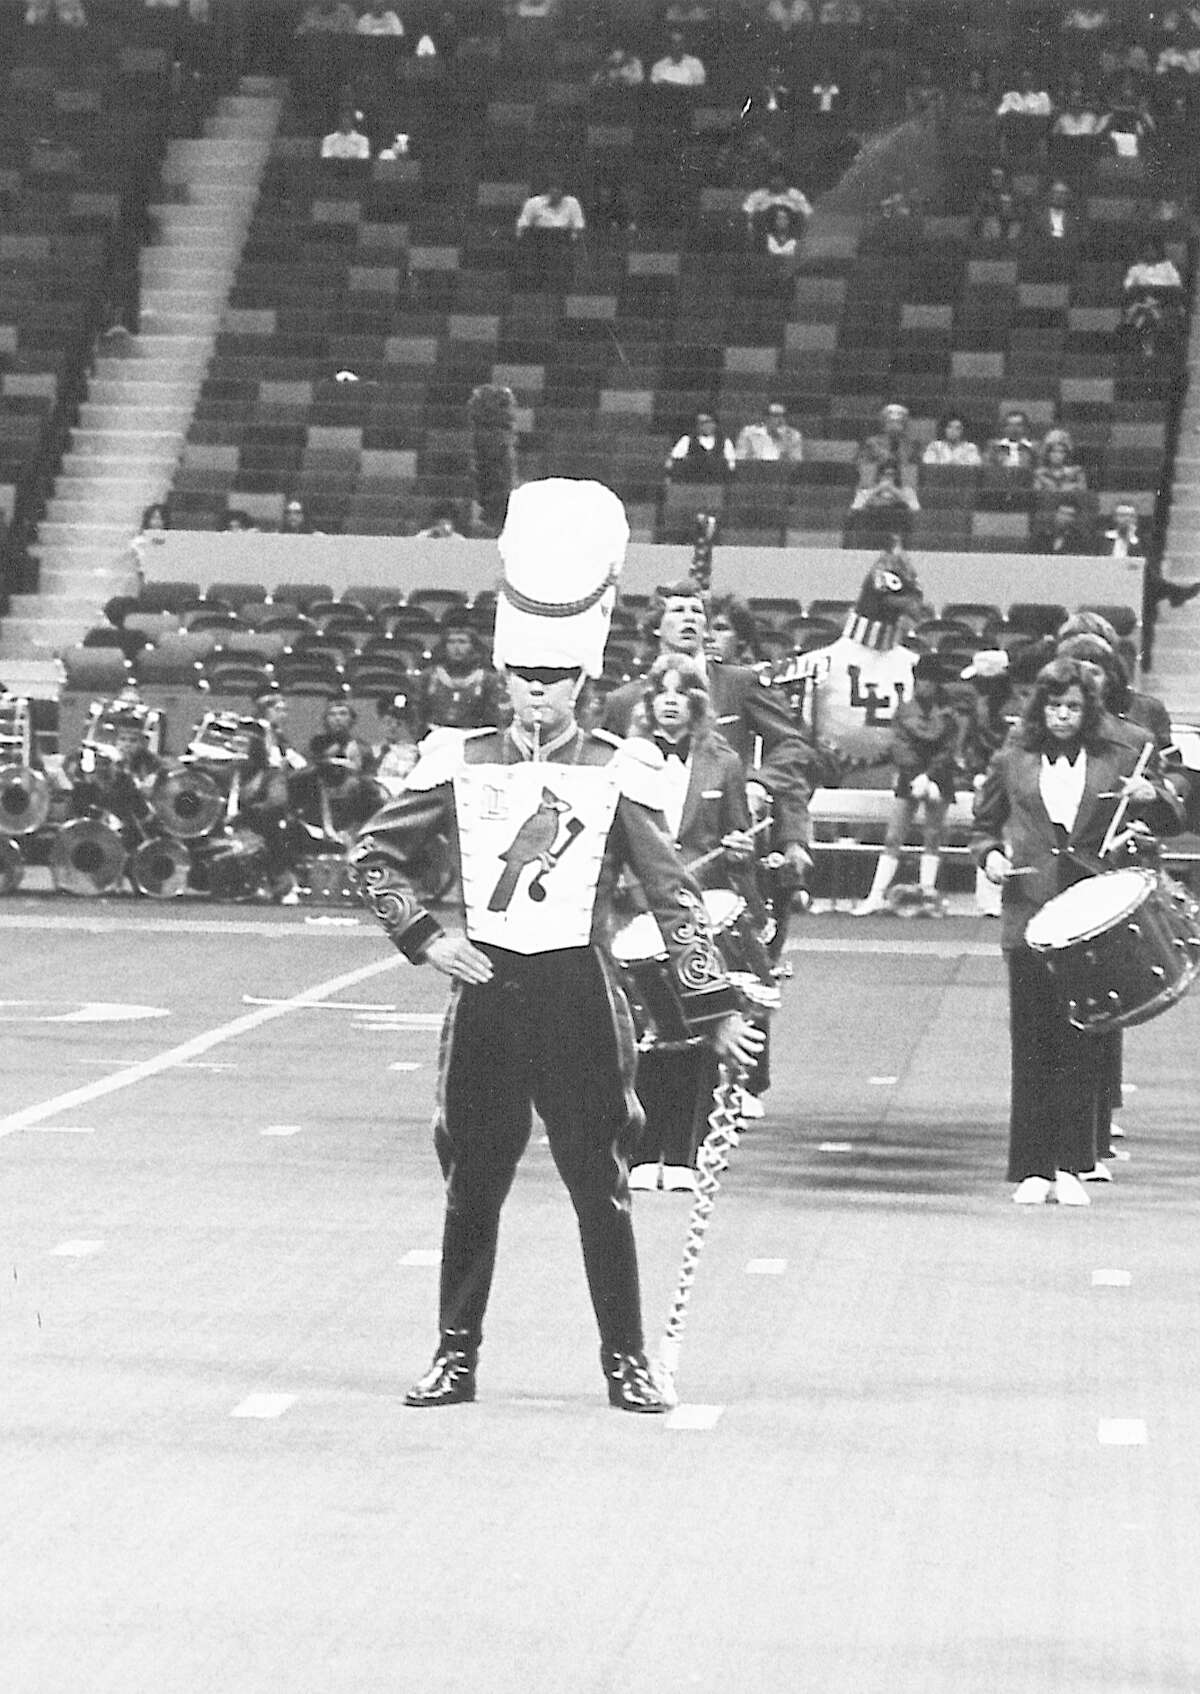 Carl Albright performs with the Lamar University Marching Band. Photo undated